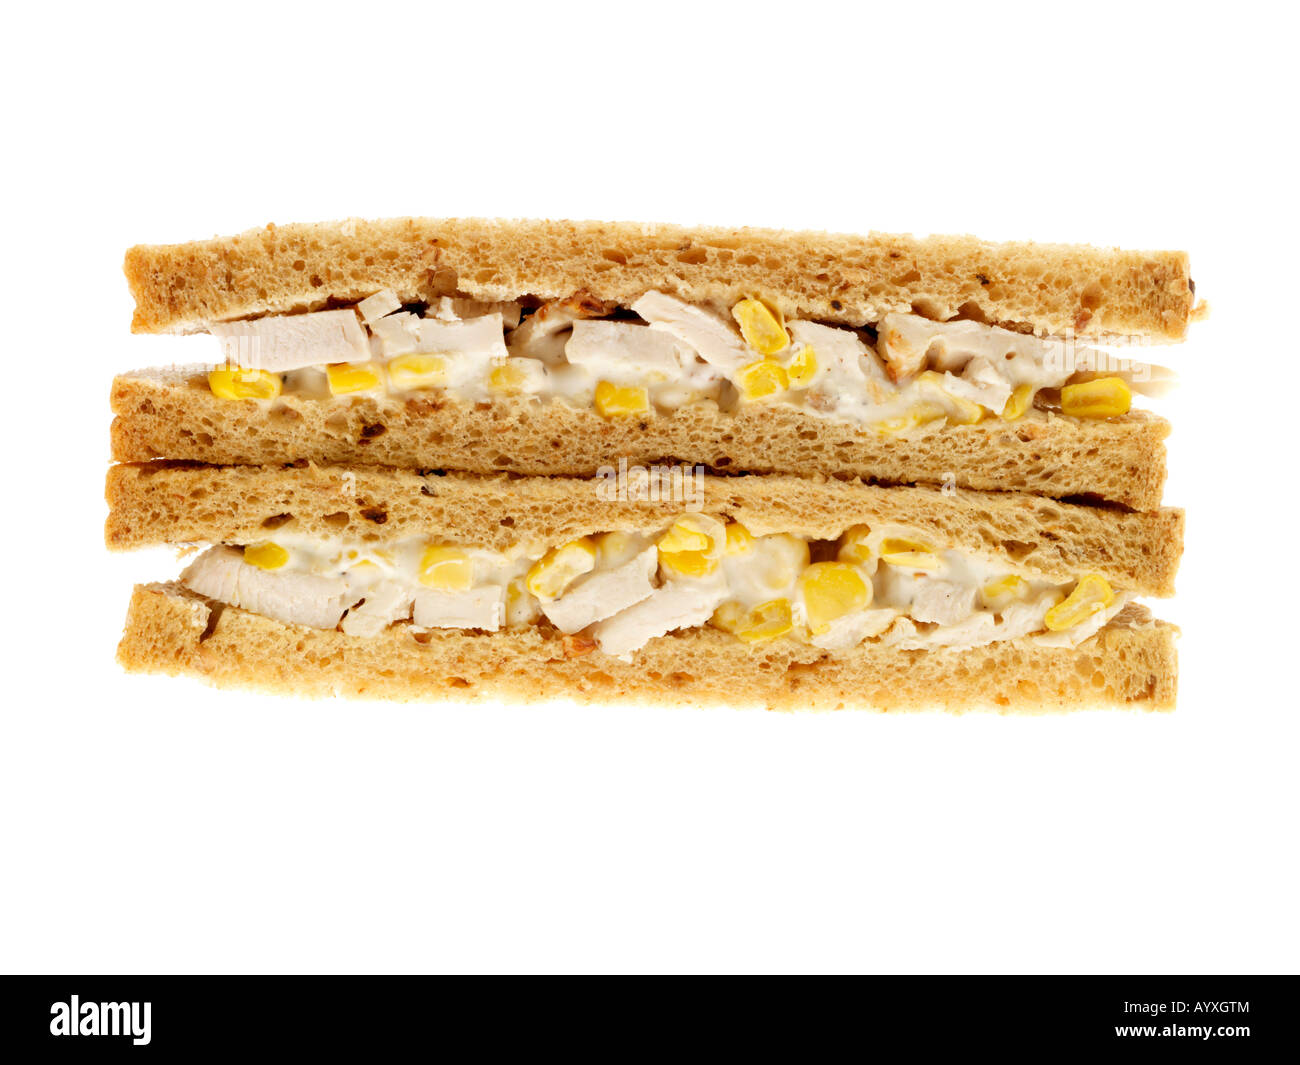 Chicken and Sweetcorn Sandwich - Stock Image